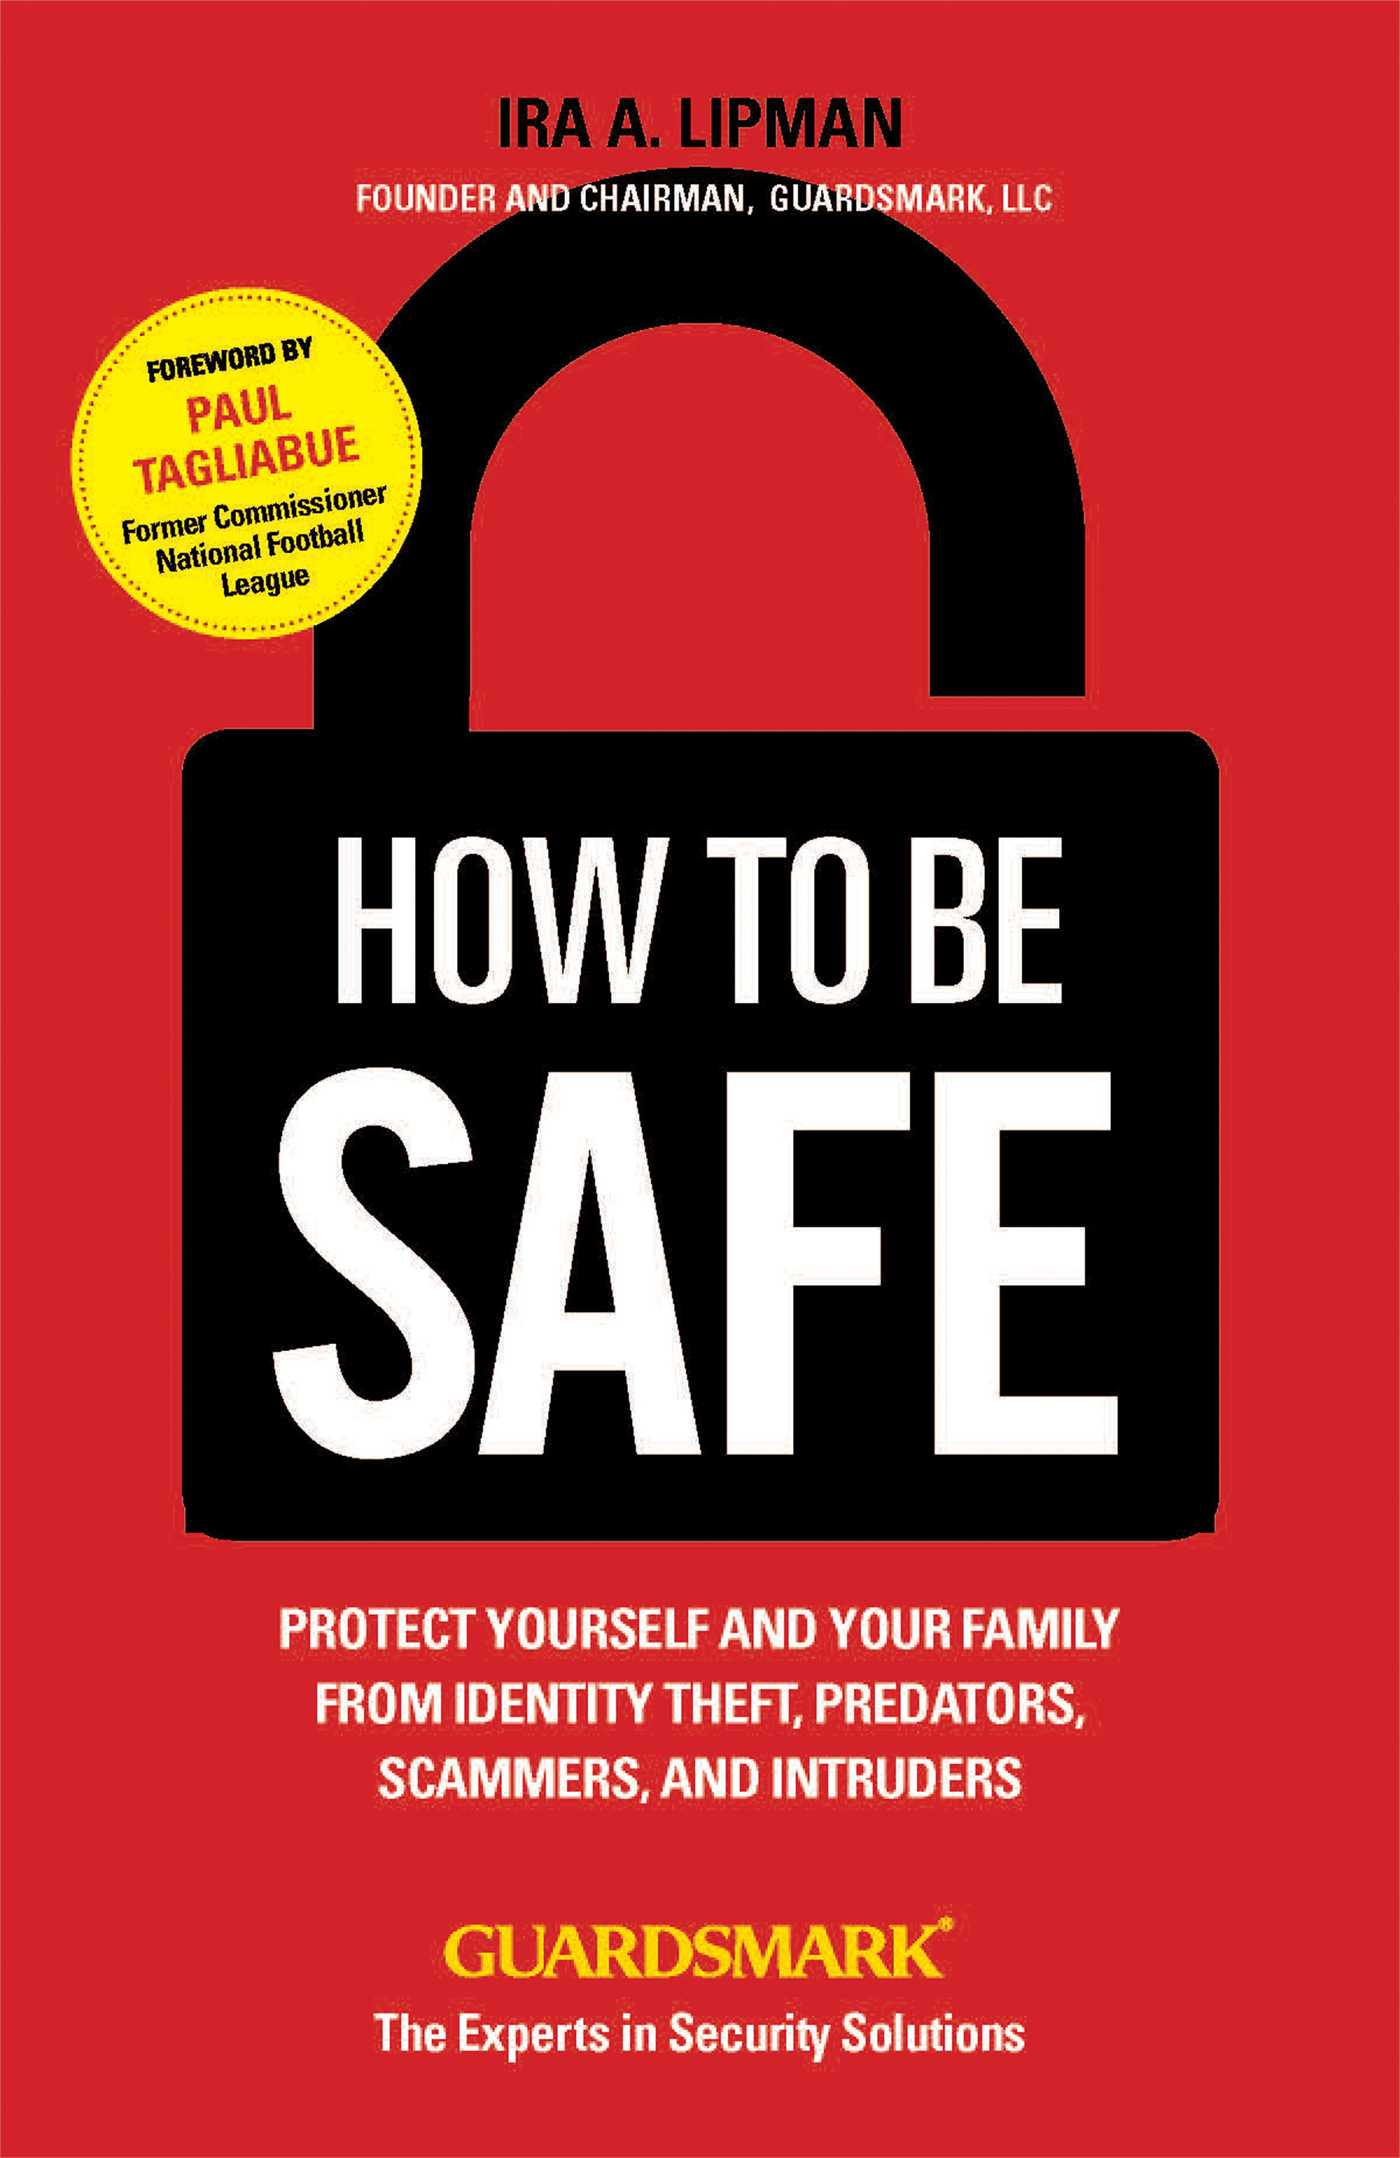 How-to-be-safe-9781621451402_hr